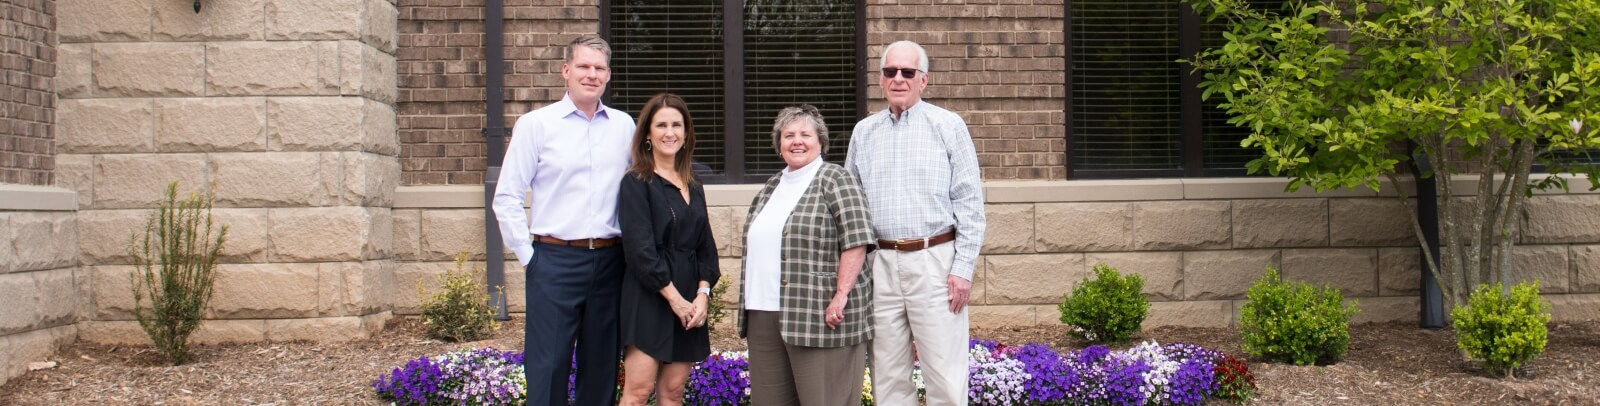 The Stewart Family, left-to-right: Andrew Stewart, Tina Stewart, Karen Stewart, Les Stewart in front of the Stewart Engineers Headquarters